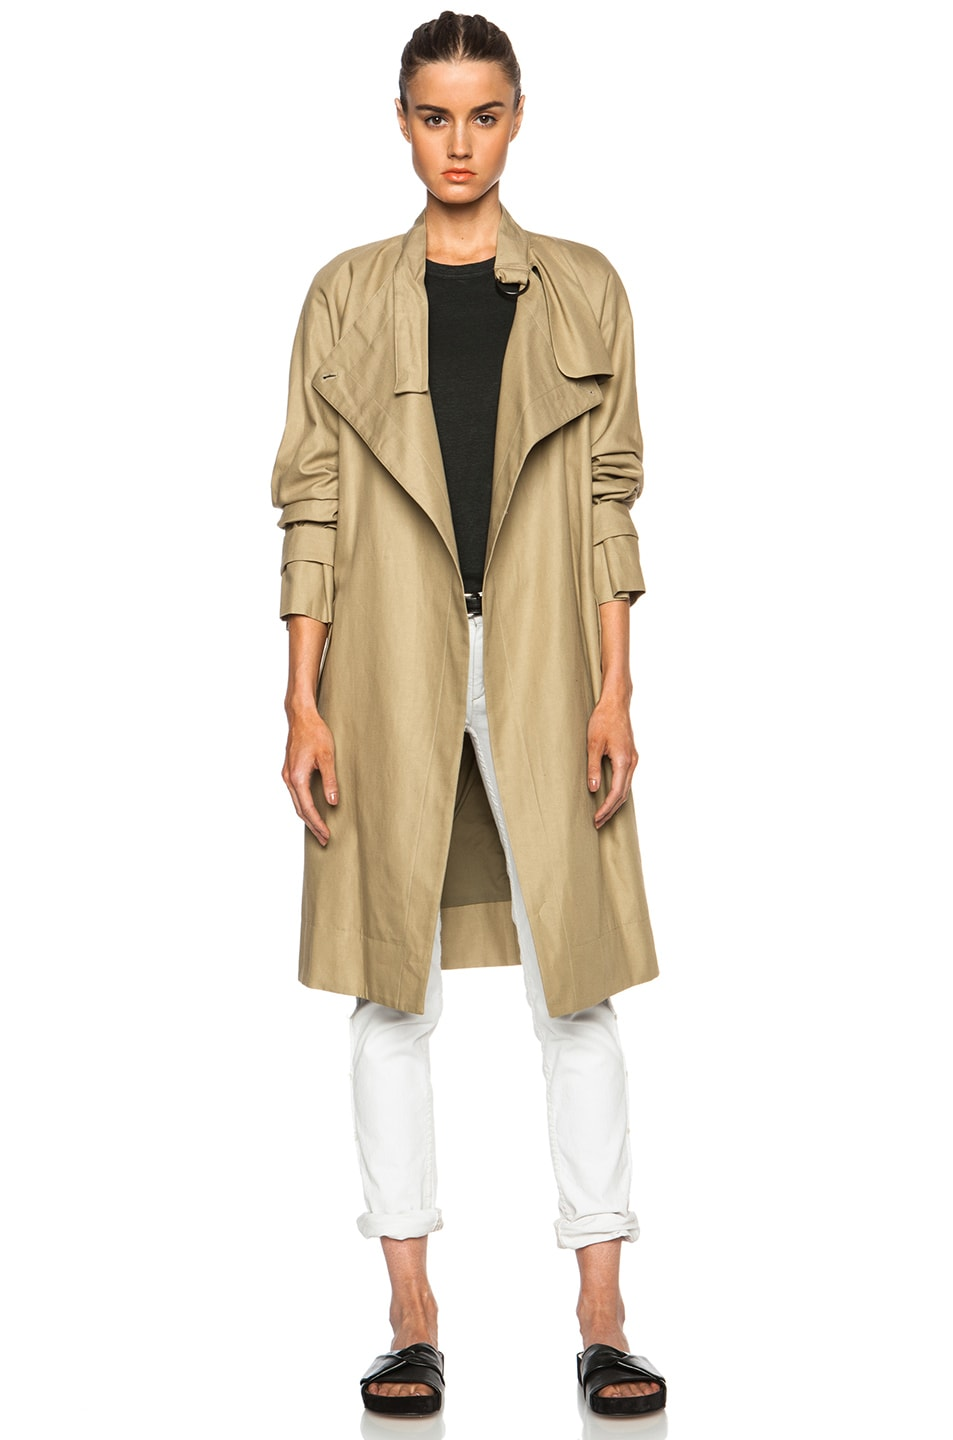 aa8bc77a863 Image 1 of Isabel Marant Only Baroudeur Light Chic Cotton-Blend Trench in  Ficelle